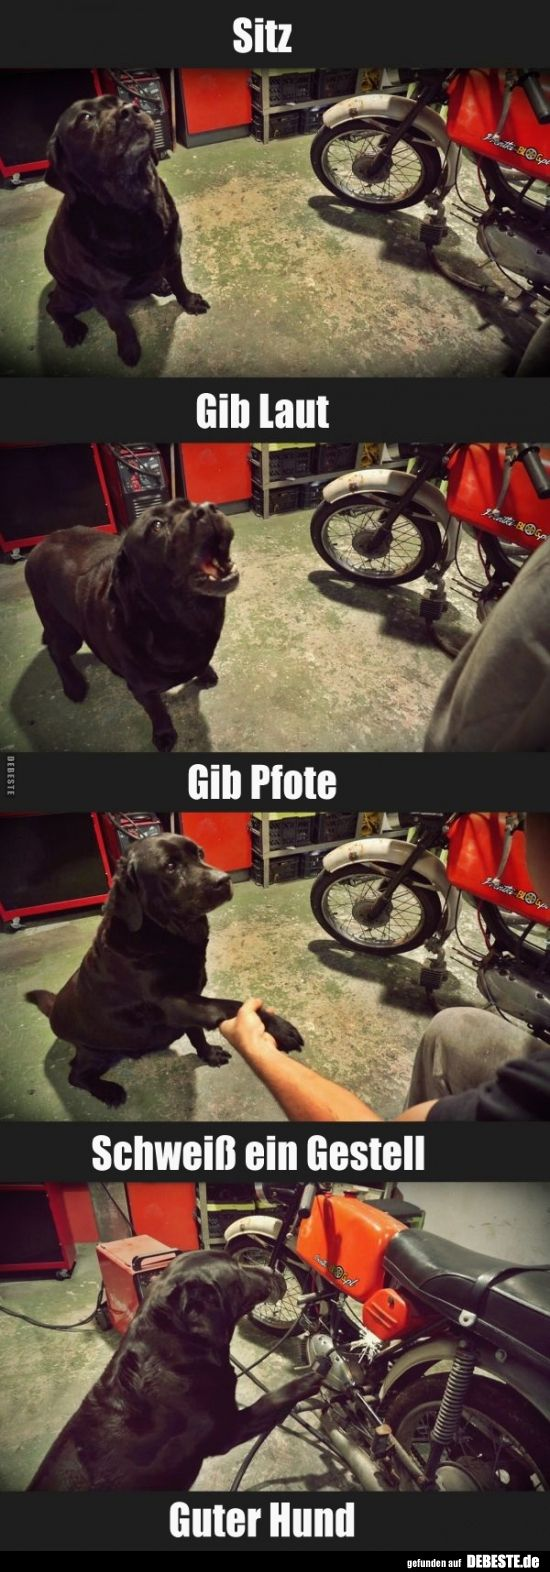 Seat / Give Loud / Give paw ..   Funny pictures, sayings, jokes, really funny